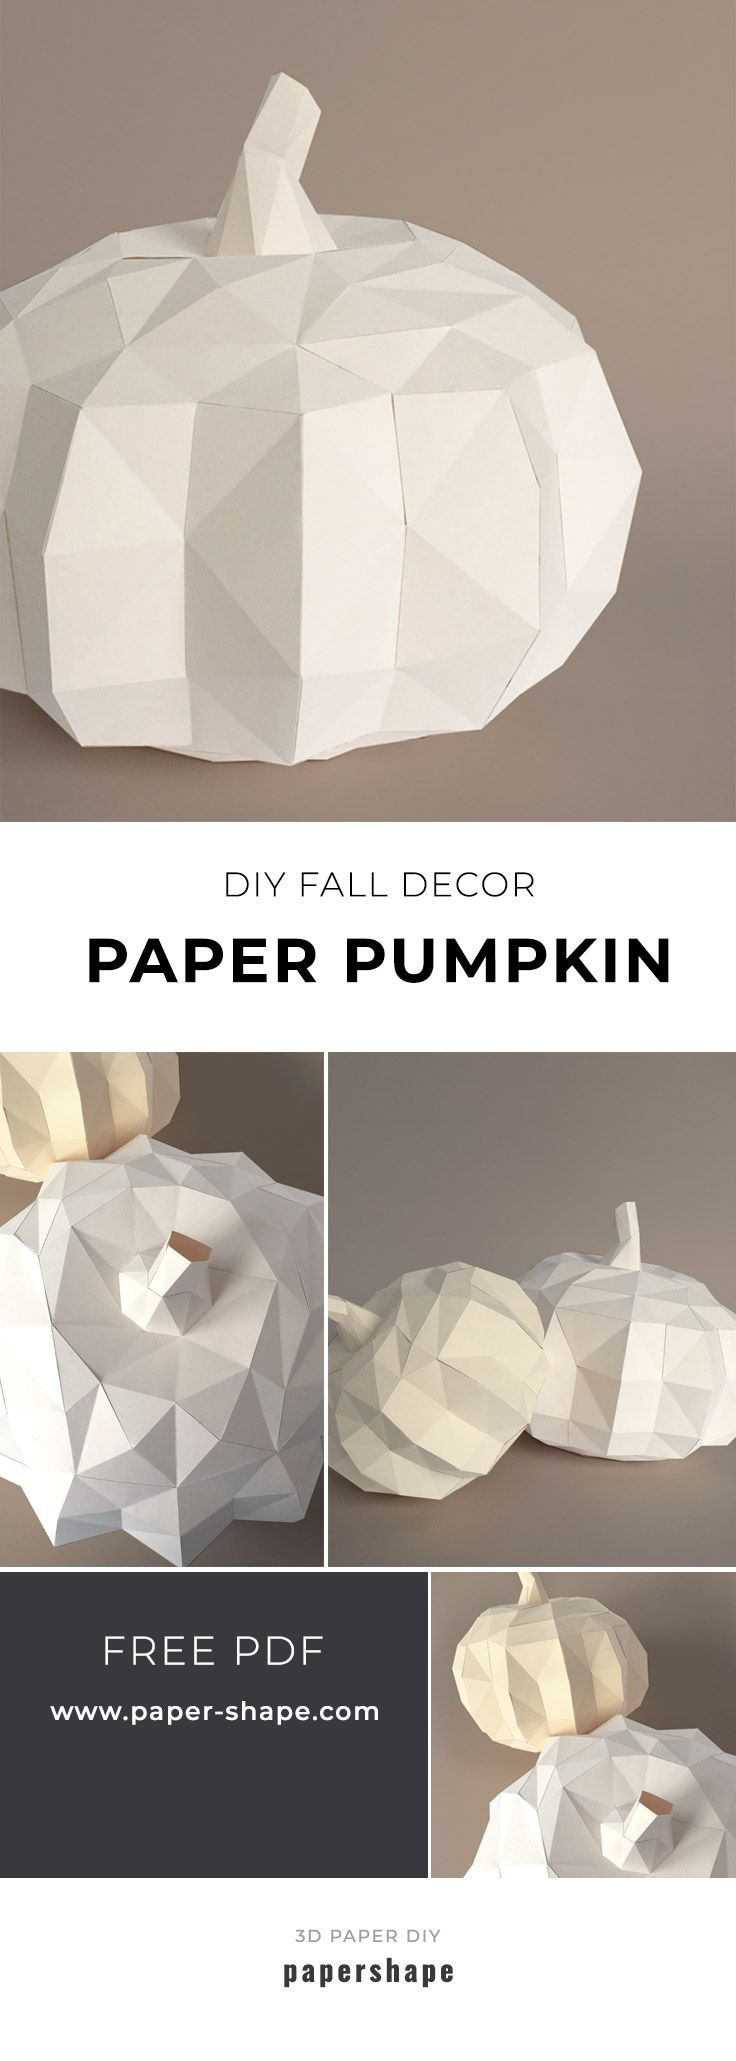 How Do I Make A Modern 3d Pumpkin From Paper Free Template Fetes